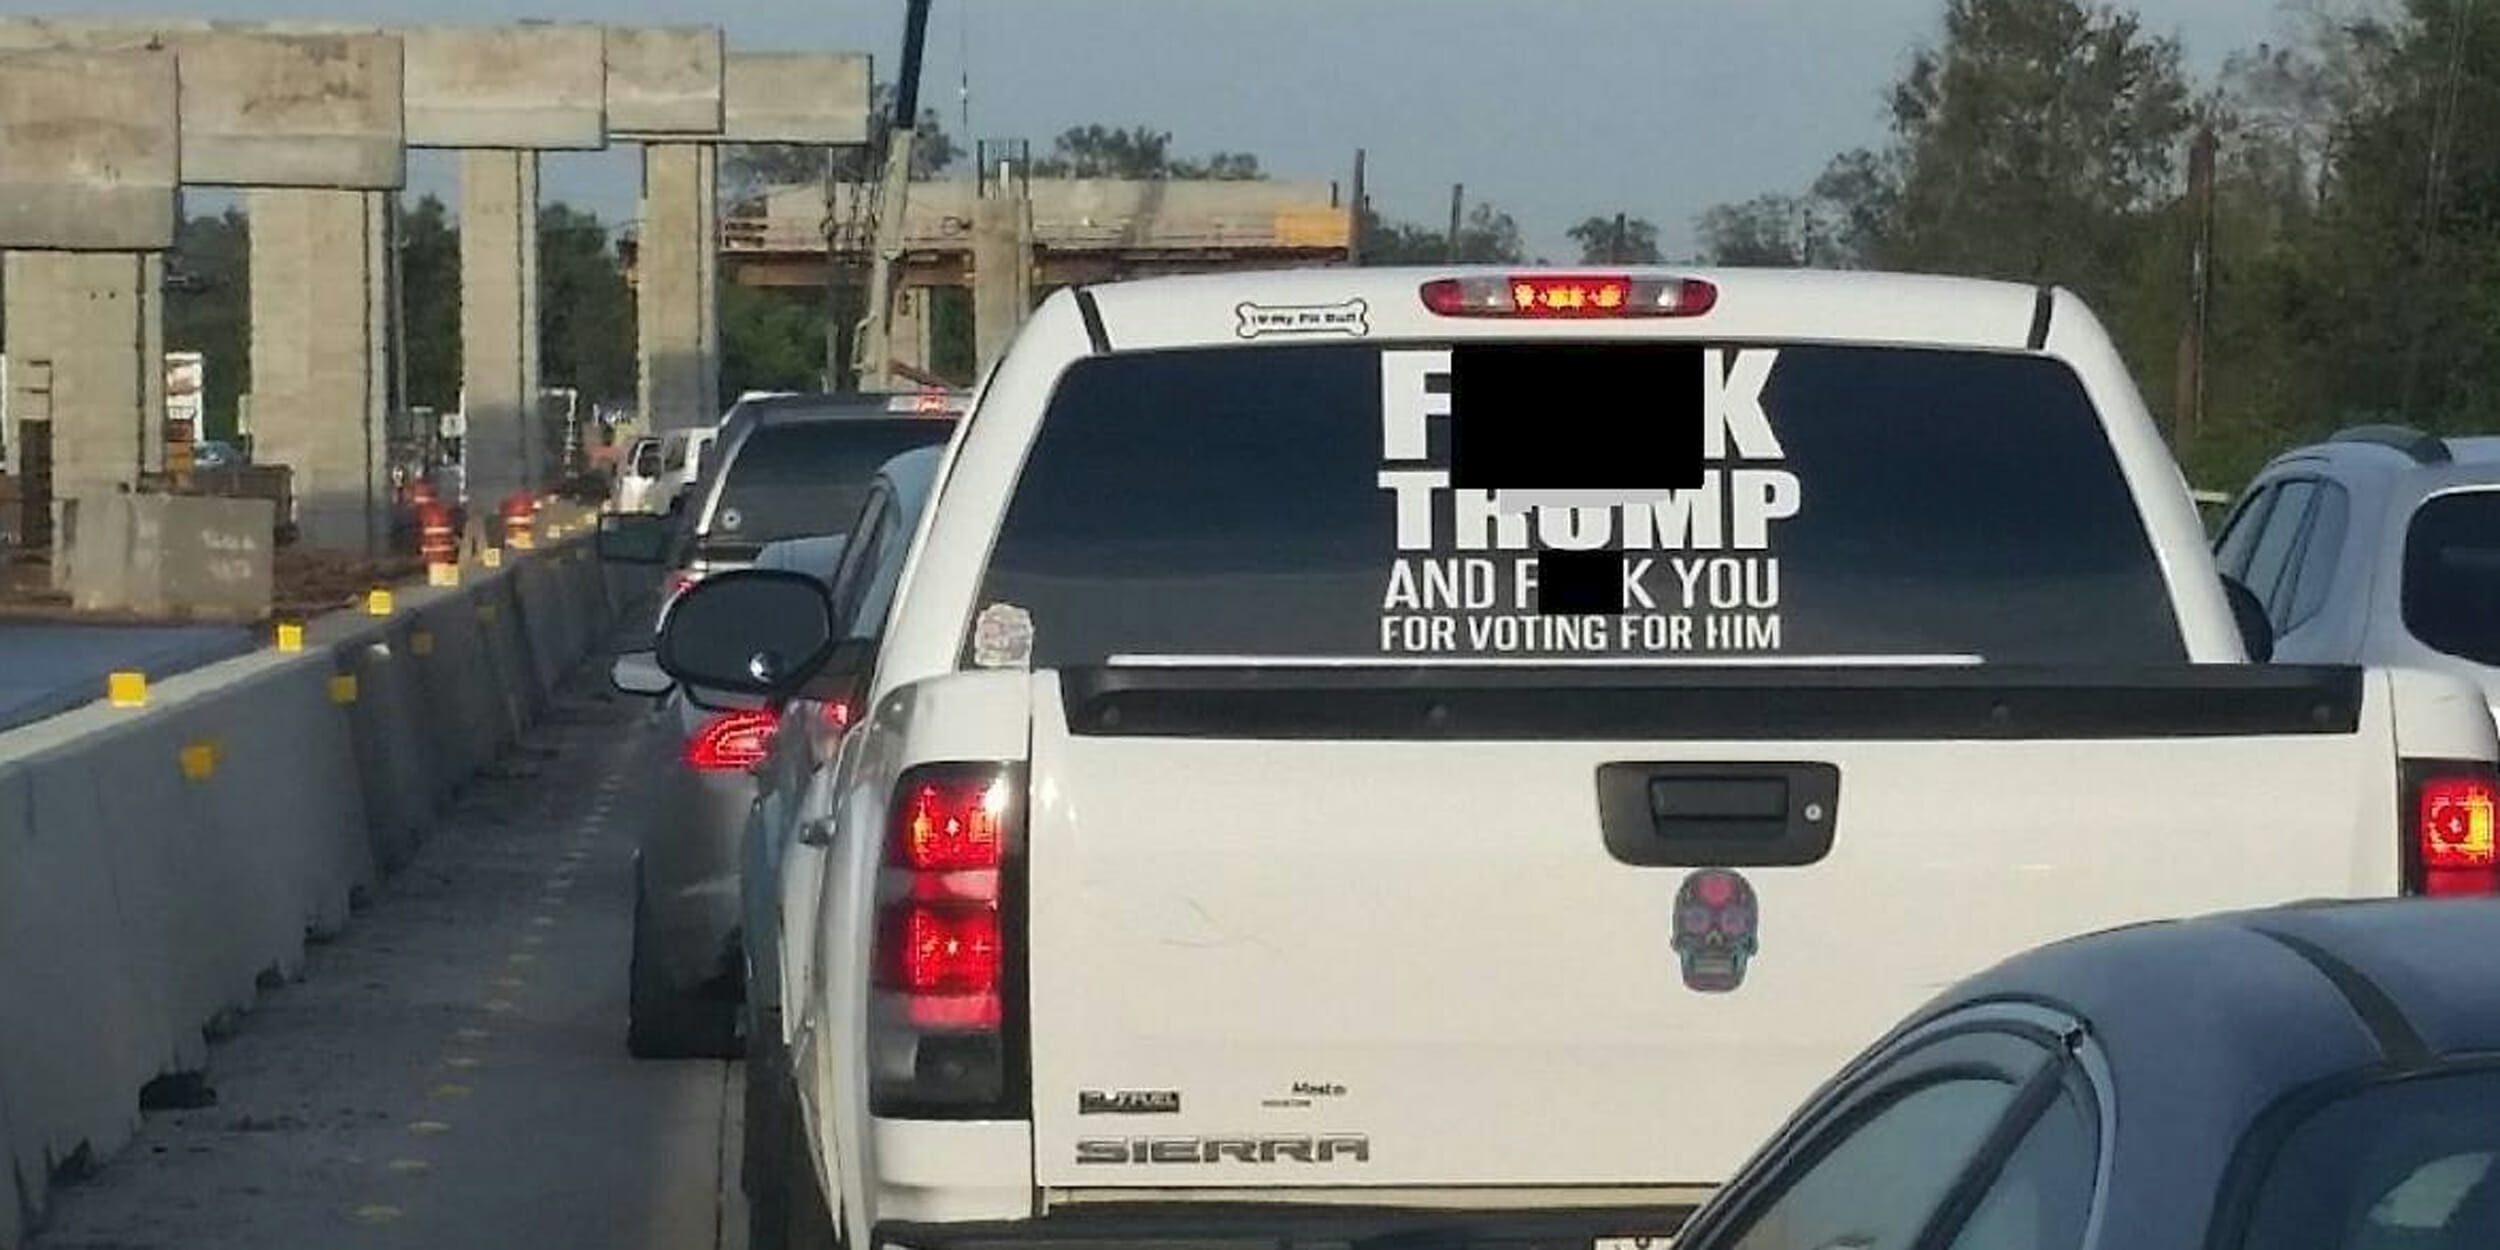 Trump Bumper Sticker You Can Now Buy That Viral F K Trump Car Sticker For Just 3